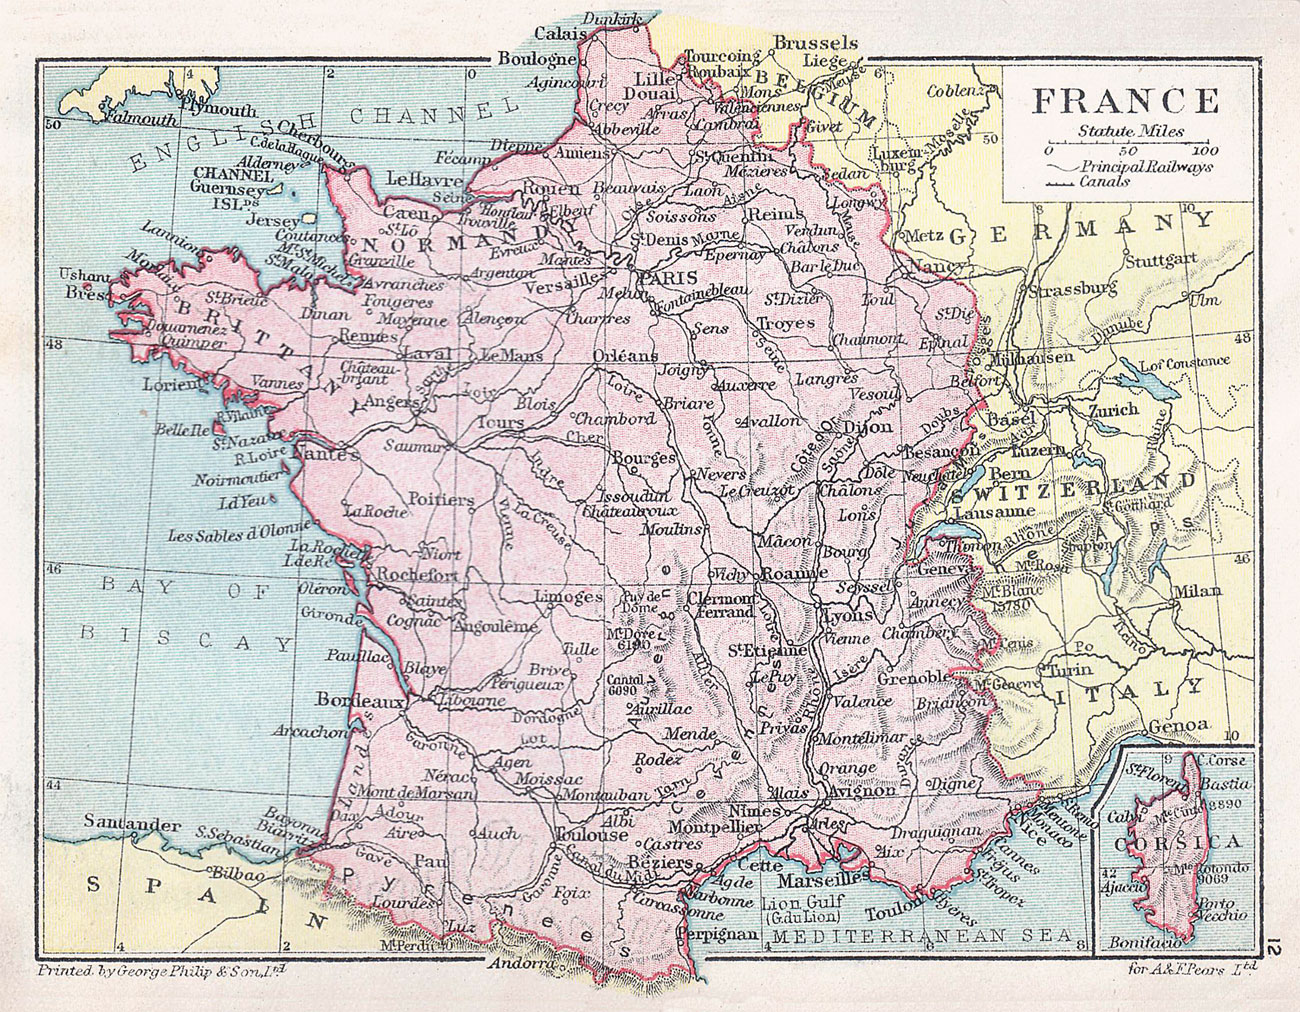 The French rail network in 1914